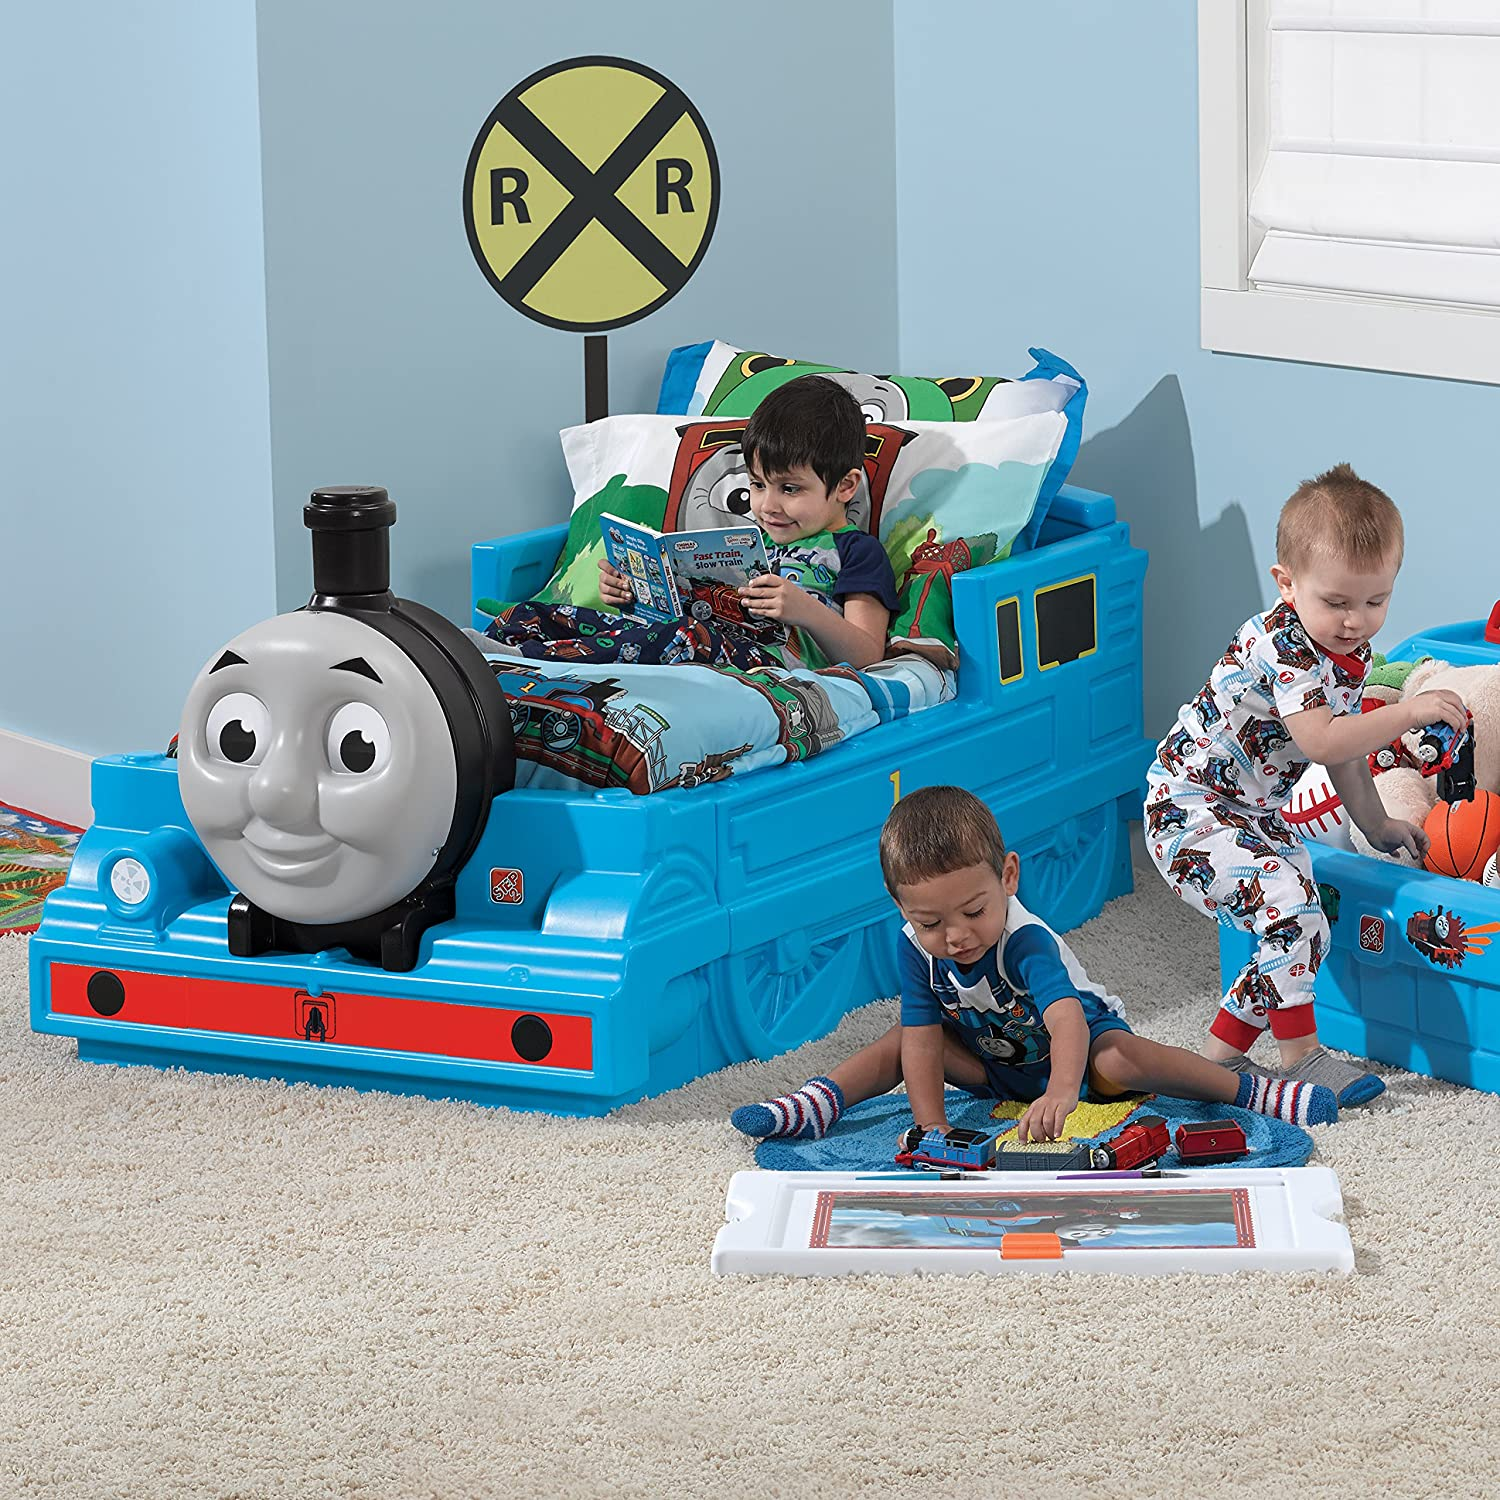 Little tikes thomas the train bed - Amazon Com Step2 Thomas The Tank Engine Toddler Bed Durable Plastic Beds For Boys Blue Toys Games